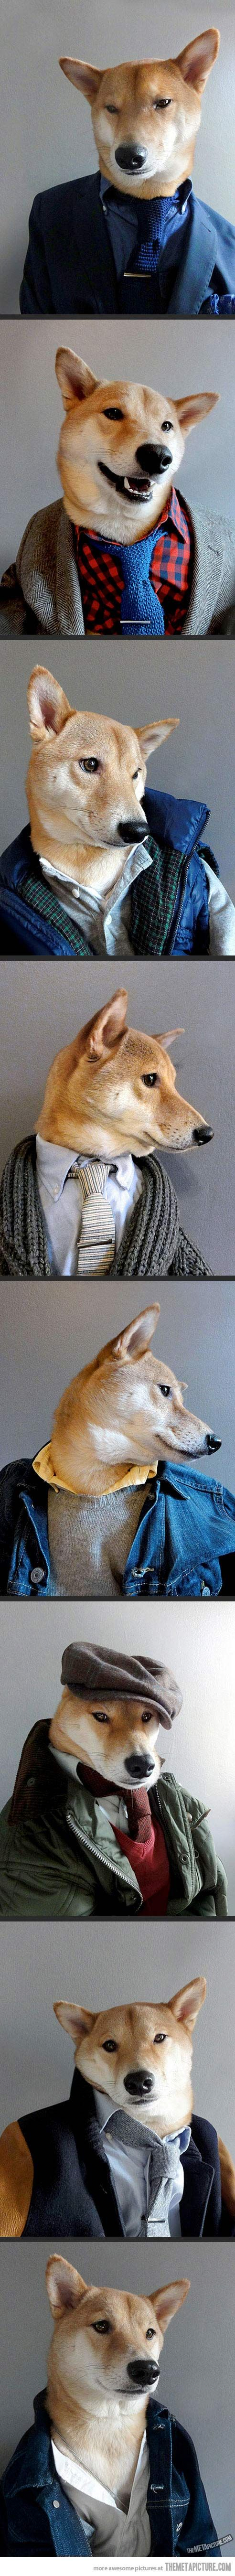 Menswear Dog… Kudo to the Photographer & handsome CANINE model.